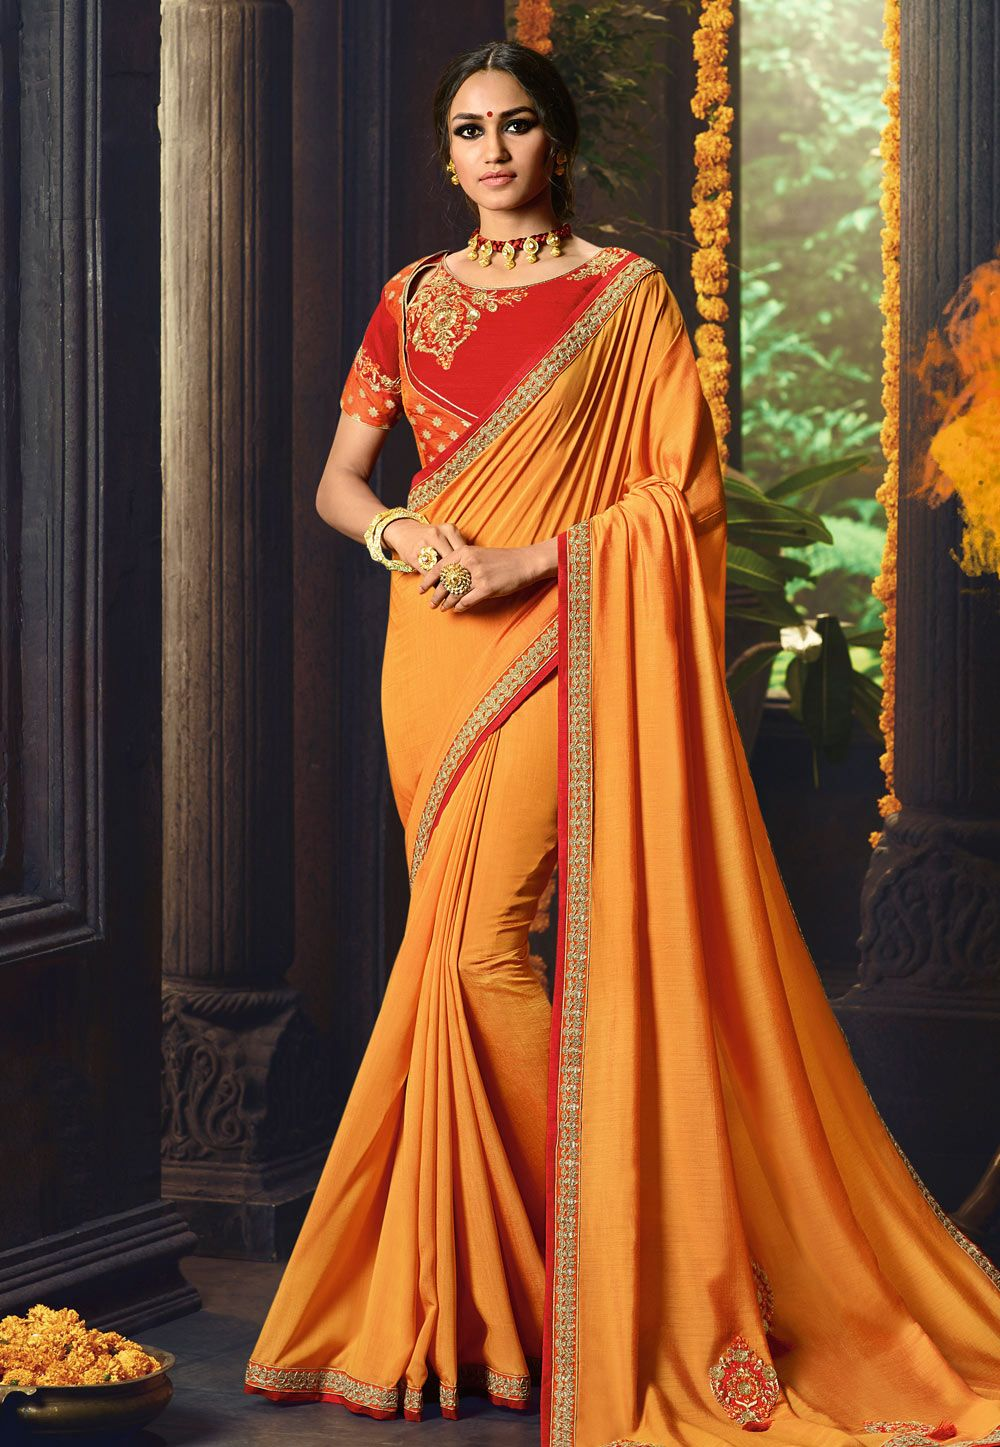 4f080522a92 Buy Orange Cotton Silk Saree With Blouse 154611 with blouse online at lowest  price from vast collection of sarees at Indianclothstore.com.